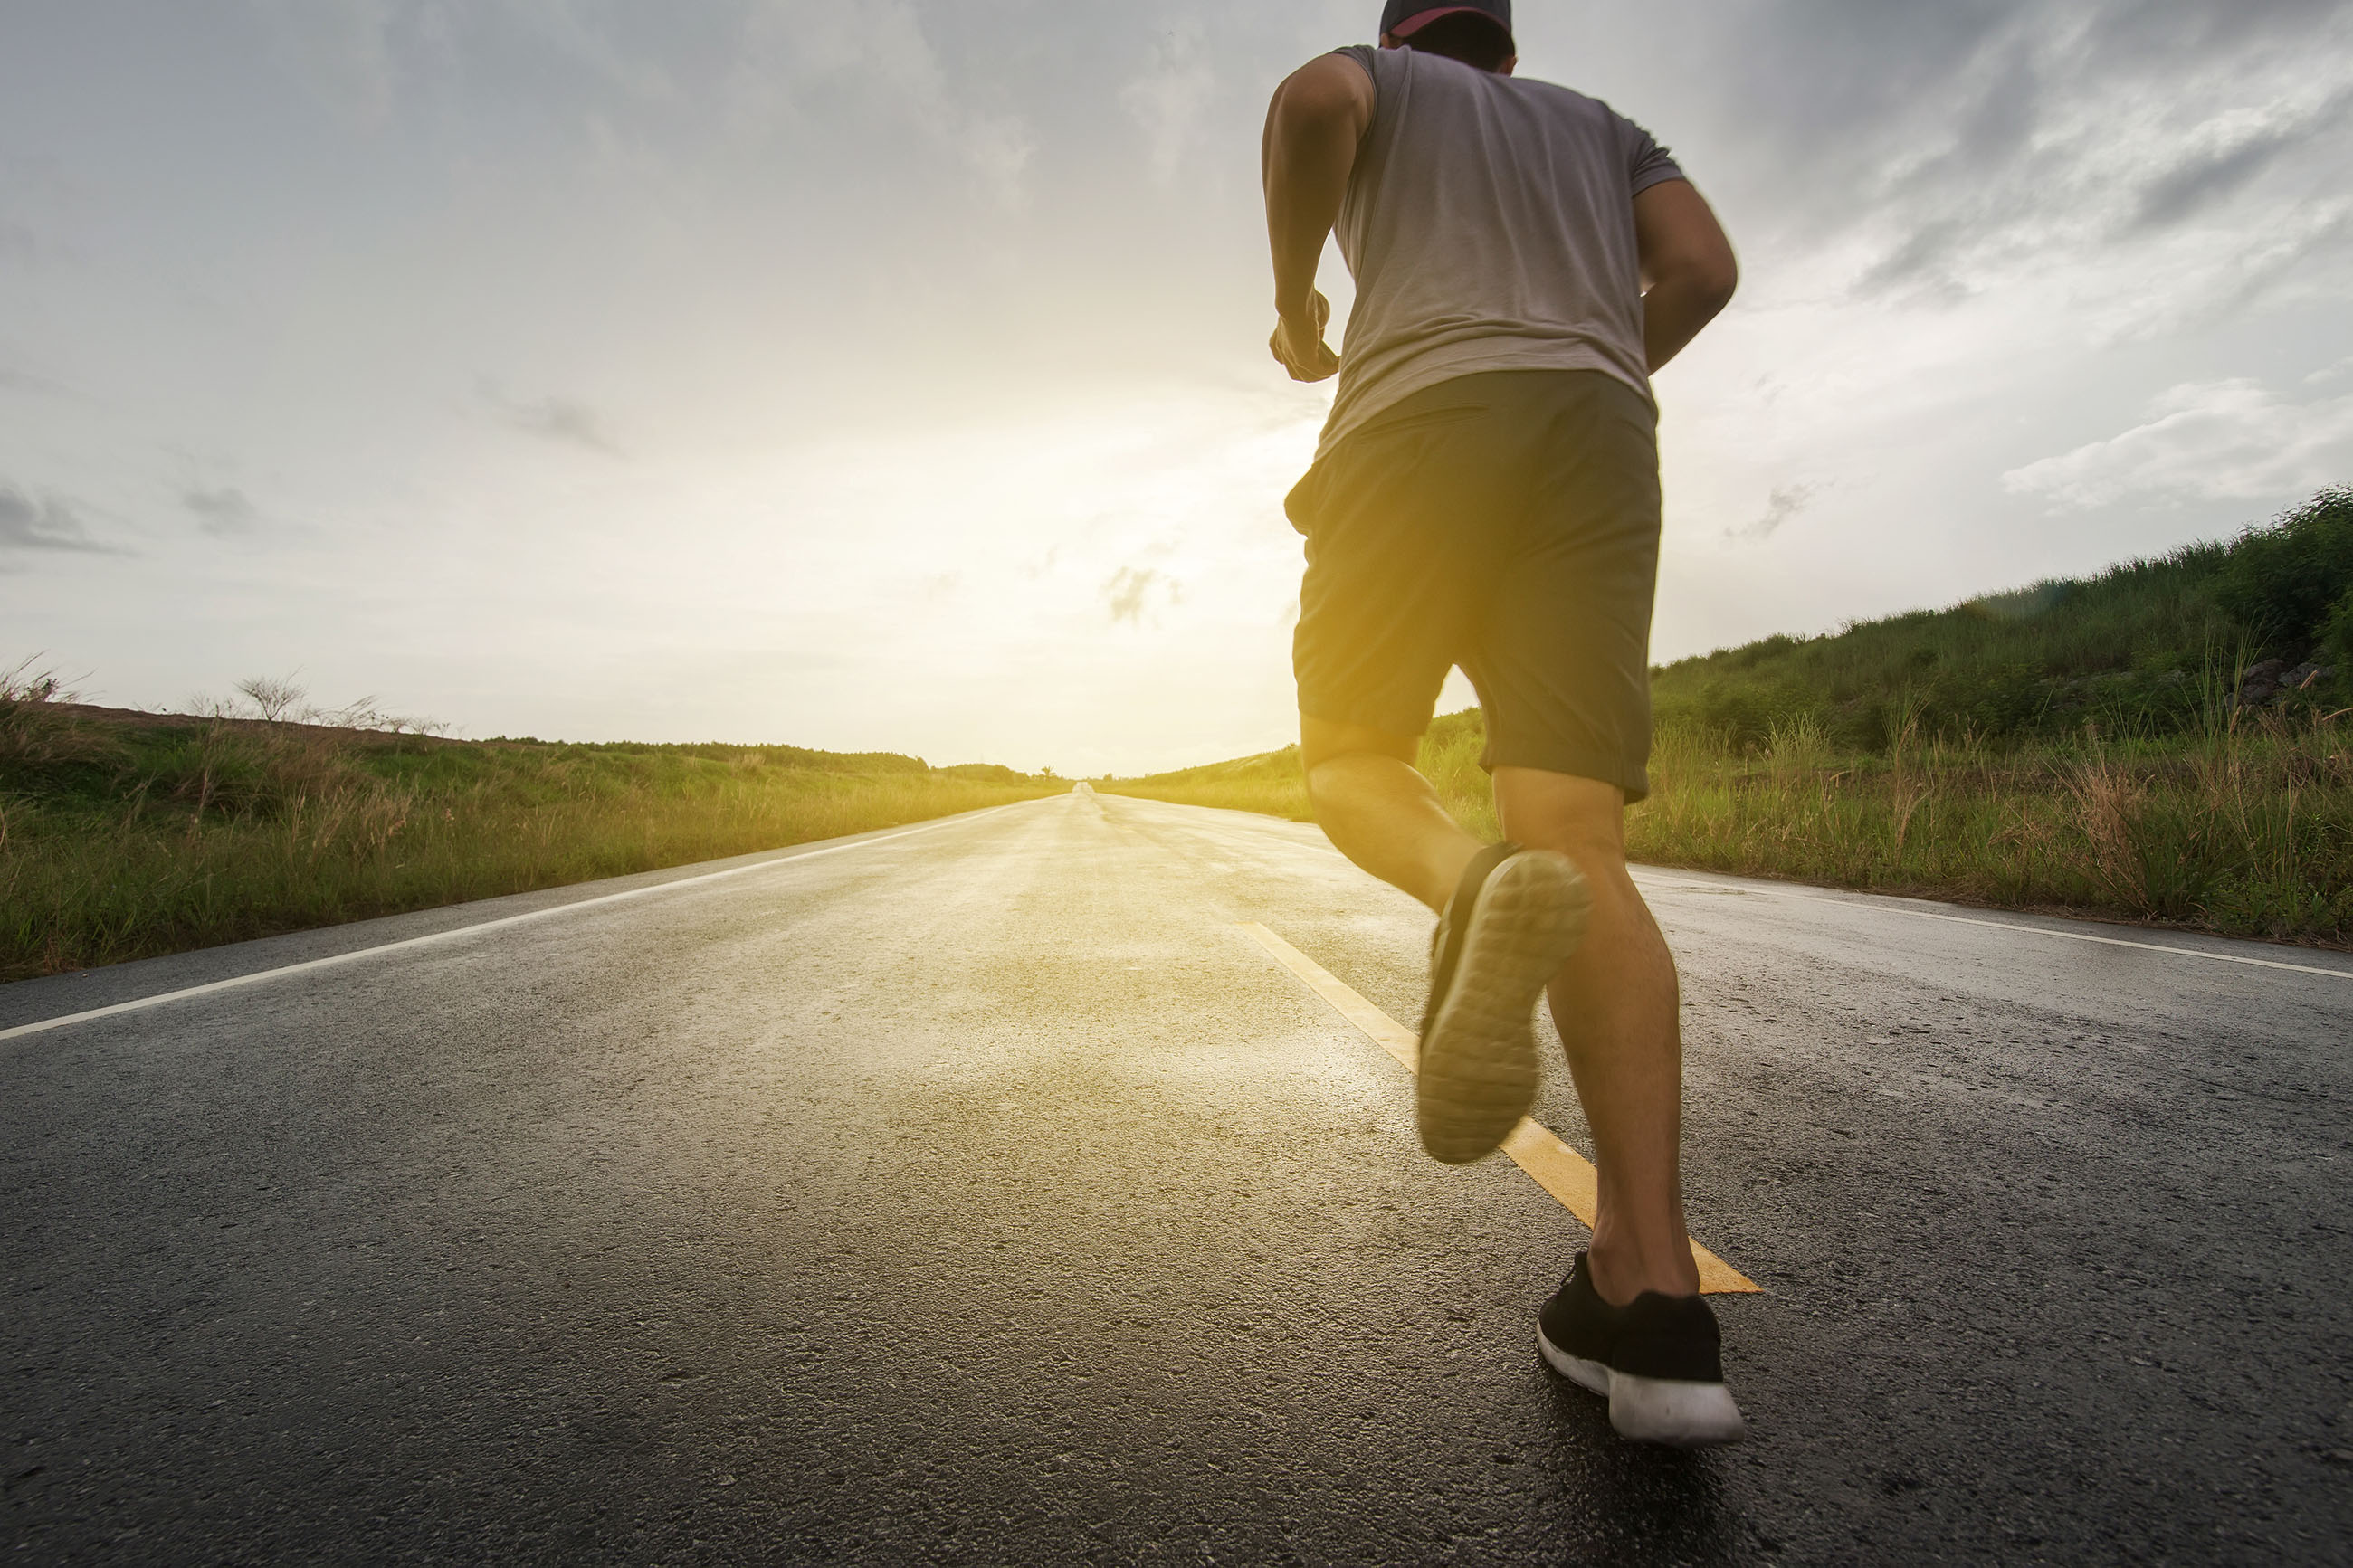 A photograph of a man running along an empty road towards the sunset.